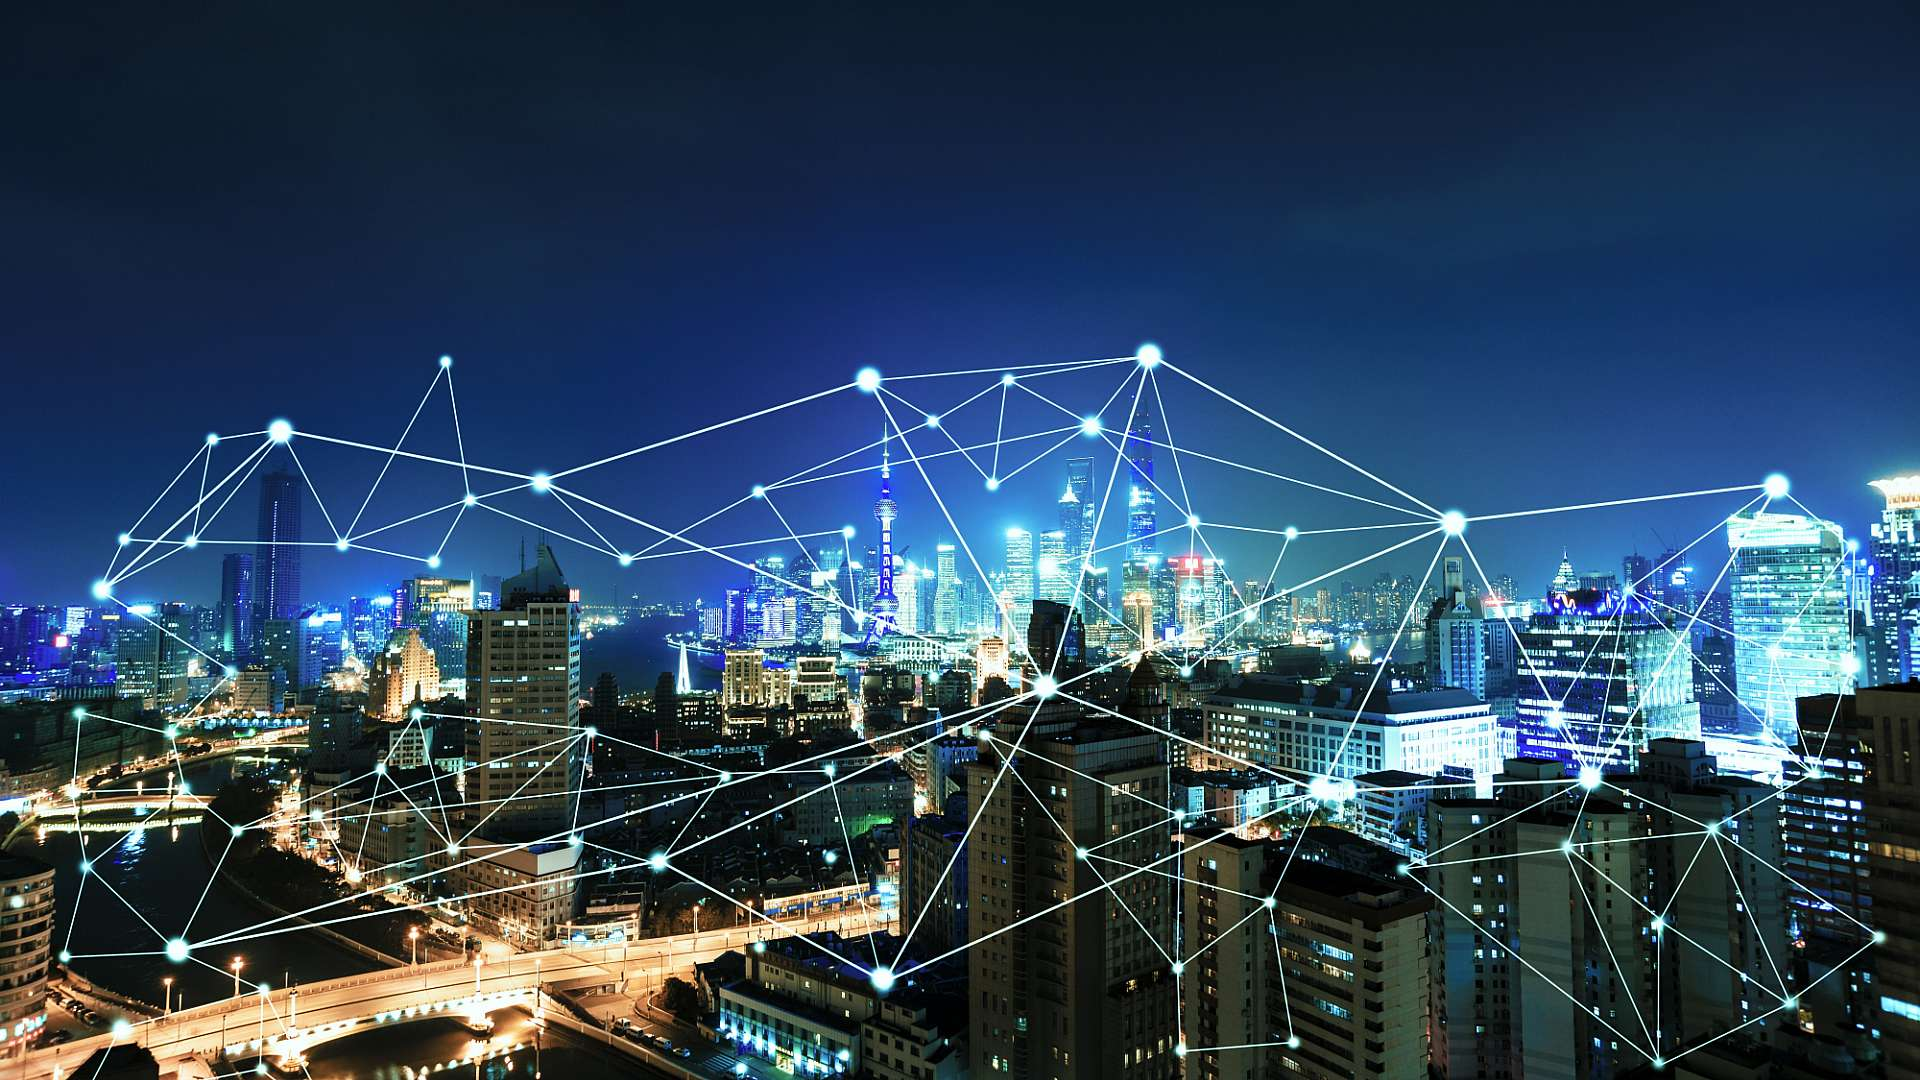 The Internet of Things is a network of physical devices, embedded with sensors, which enable appliances to connect, collect and exchange